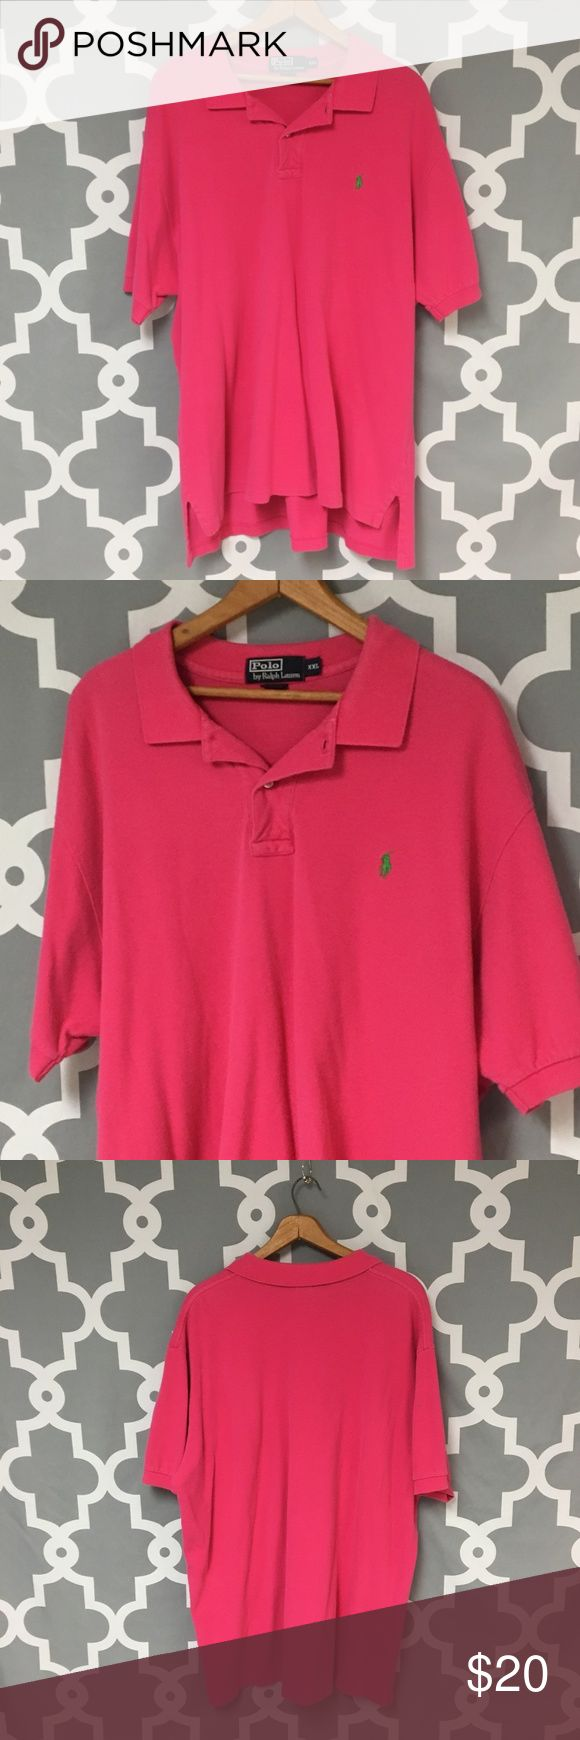 Polo Ralph Lauren Pink Polo Shirt 🔘Description: Polo Ralph Lauren Pink Polo Shirt men's size XXL good used condition    🔘Measurements:   Pit to Pit: 27 inches               Inseam: 32 inches                                                        Inventory: F   If you have any questions please feel free to let me know!                                Thanks for stopping by! Polo by Ralph Lauren Shirts Polos